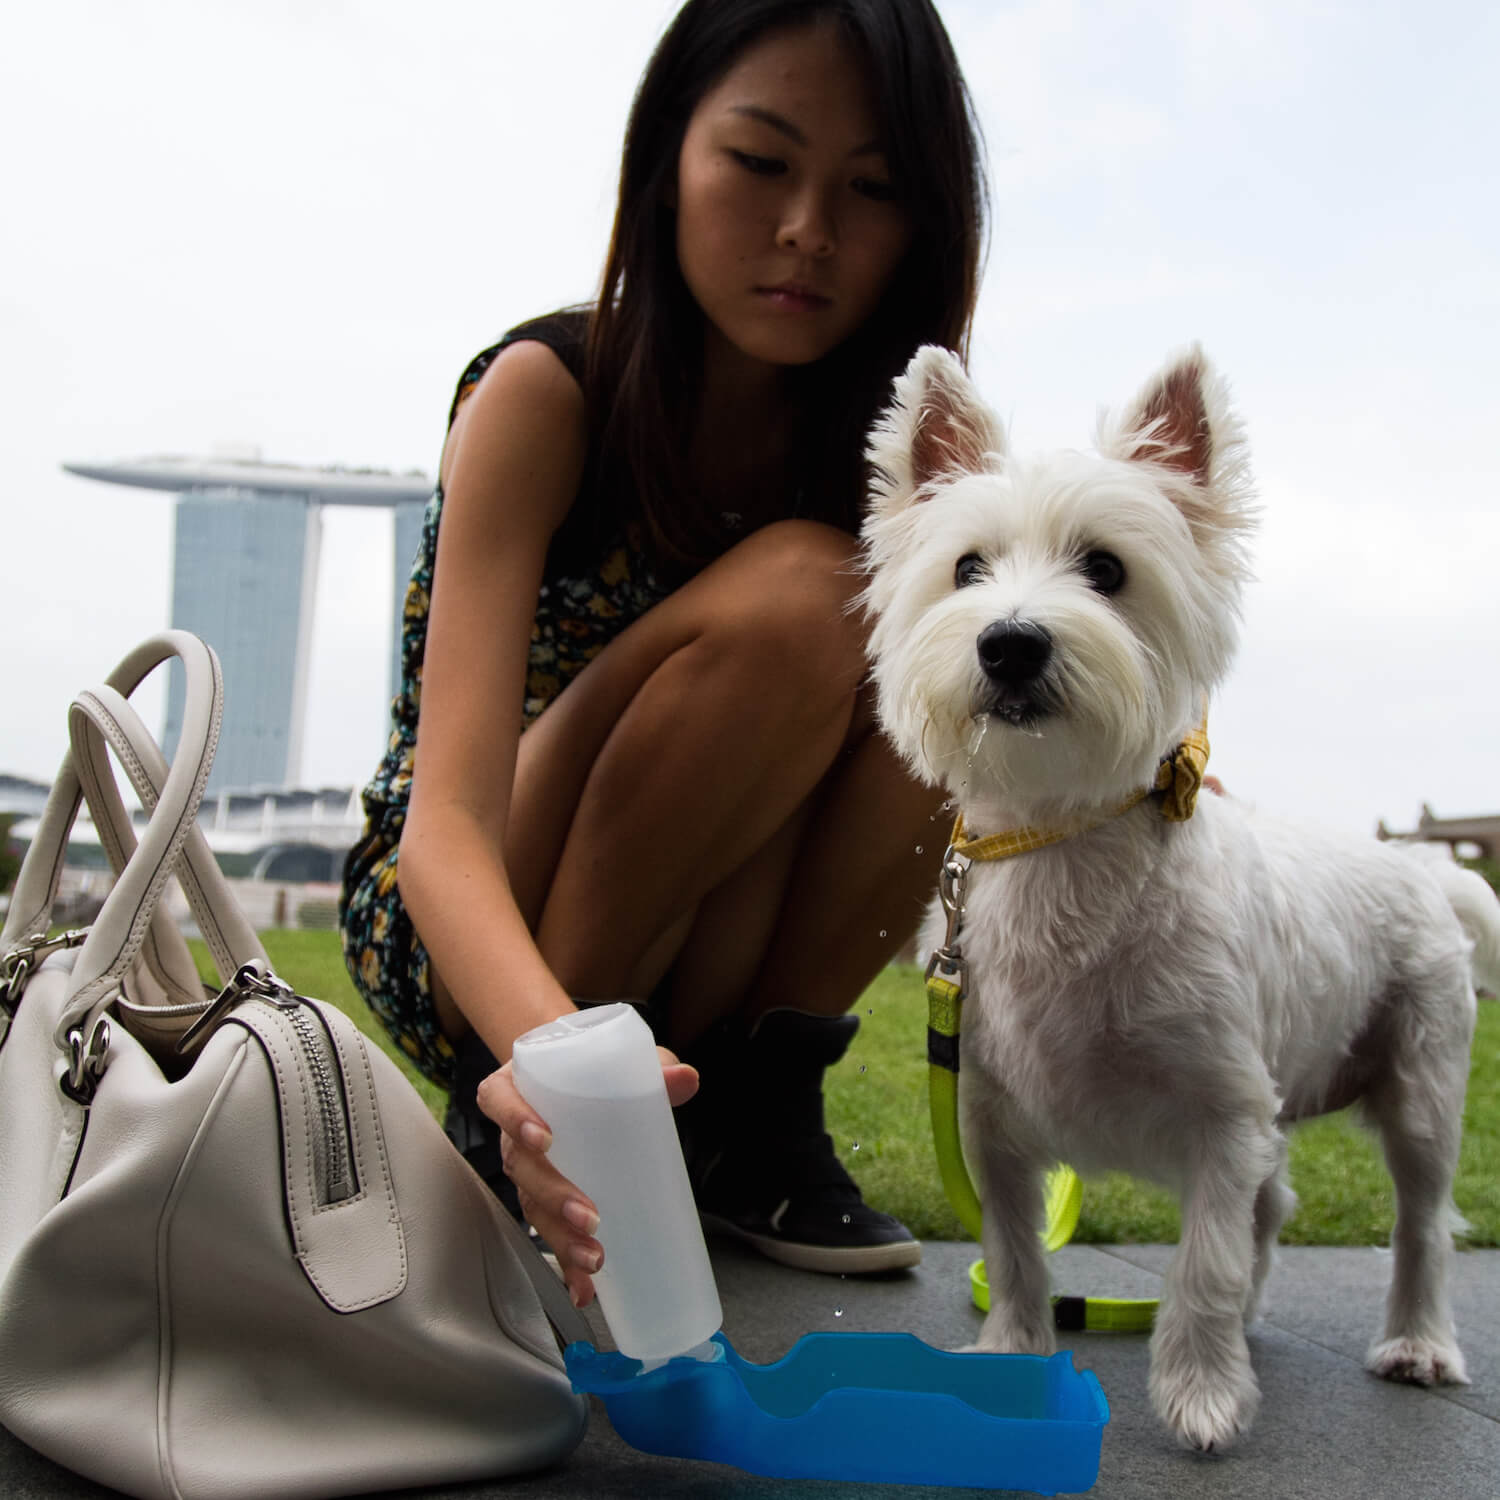 Latte drinking water at Pets 'n' the City | Vanillapup